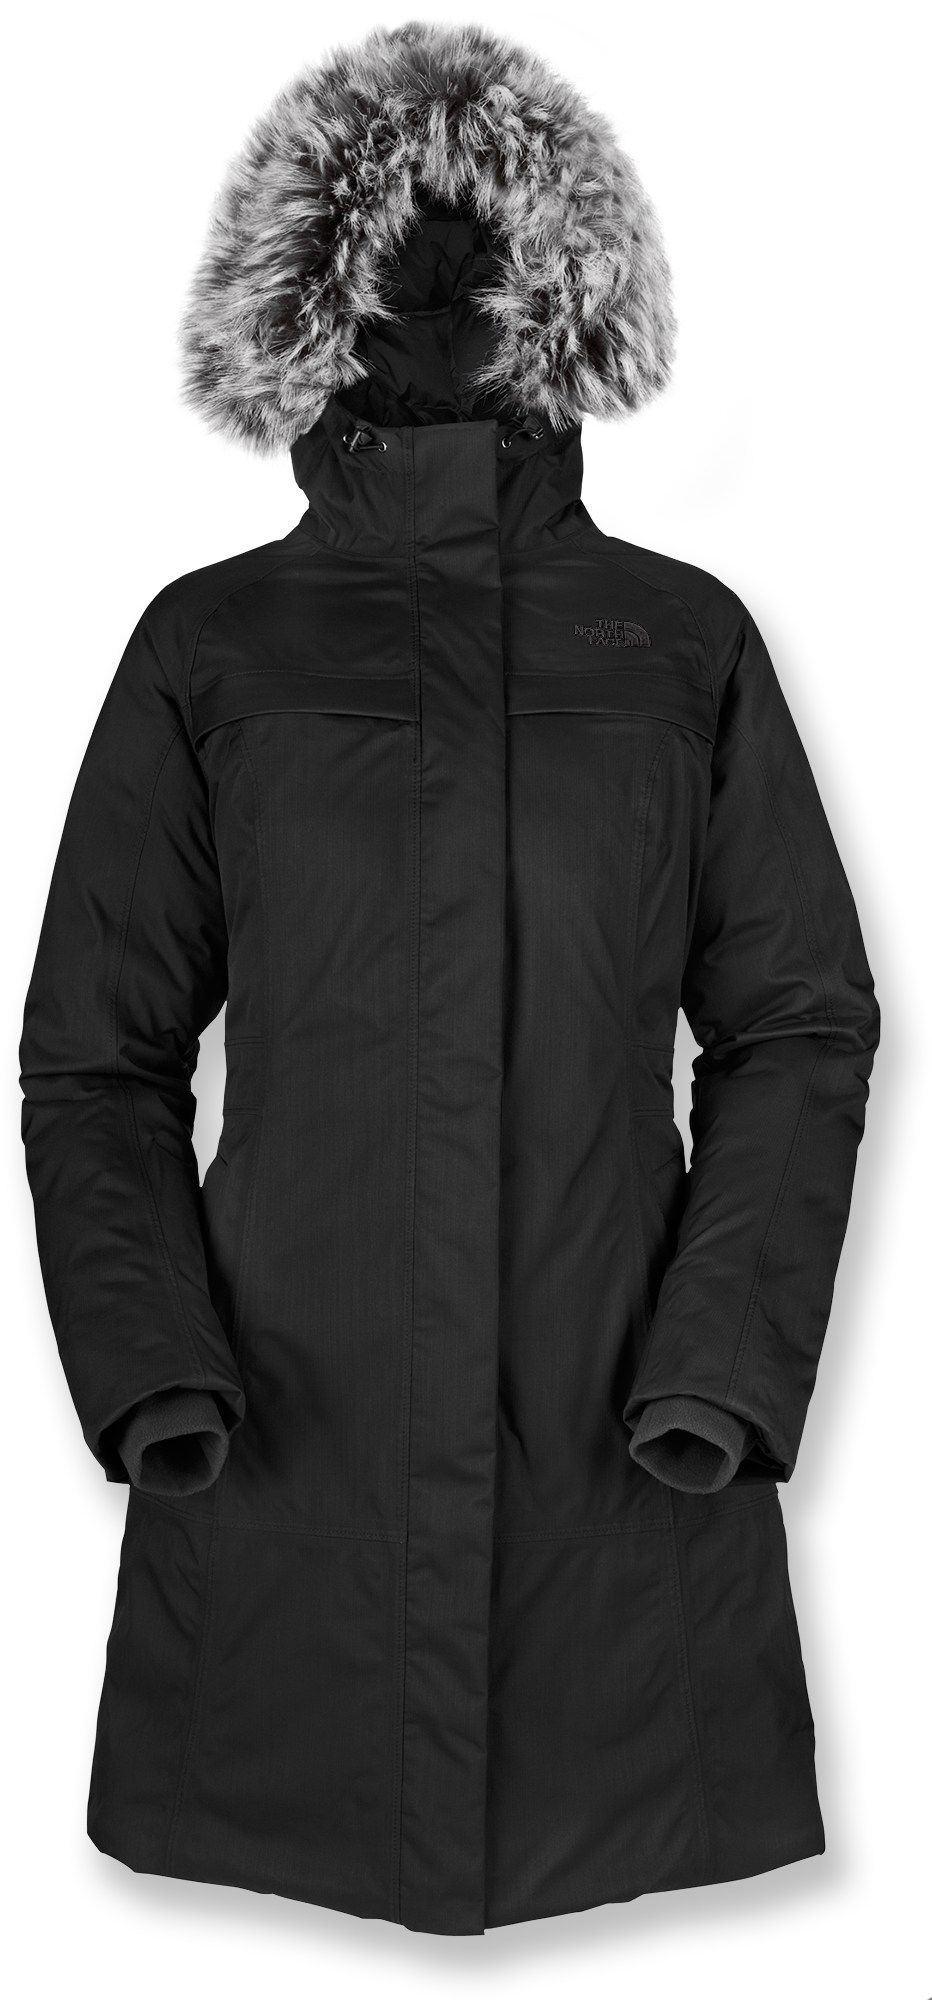 330 The North Face Arctic II Down Parka - Women s - Free Shipping at  REI.com 550 fill 2872d8ba7